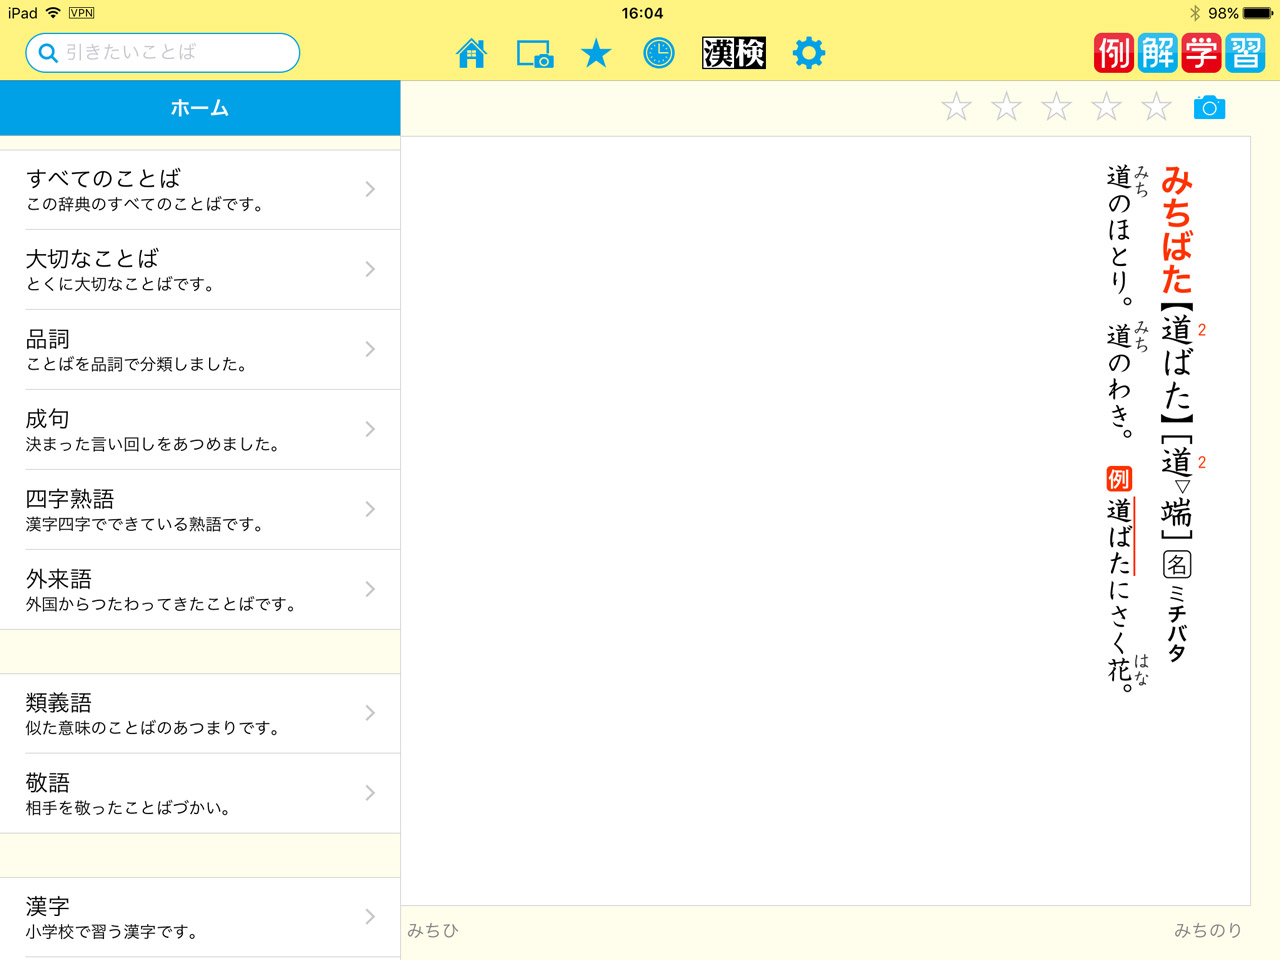 screenshots of the reikai gakushuu japanese dictionary